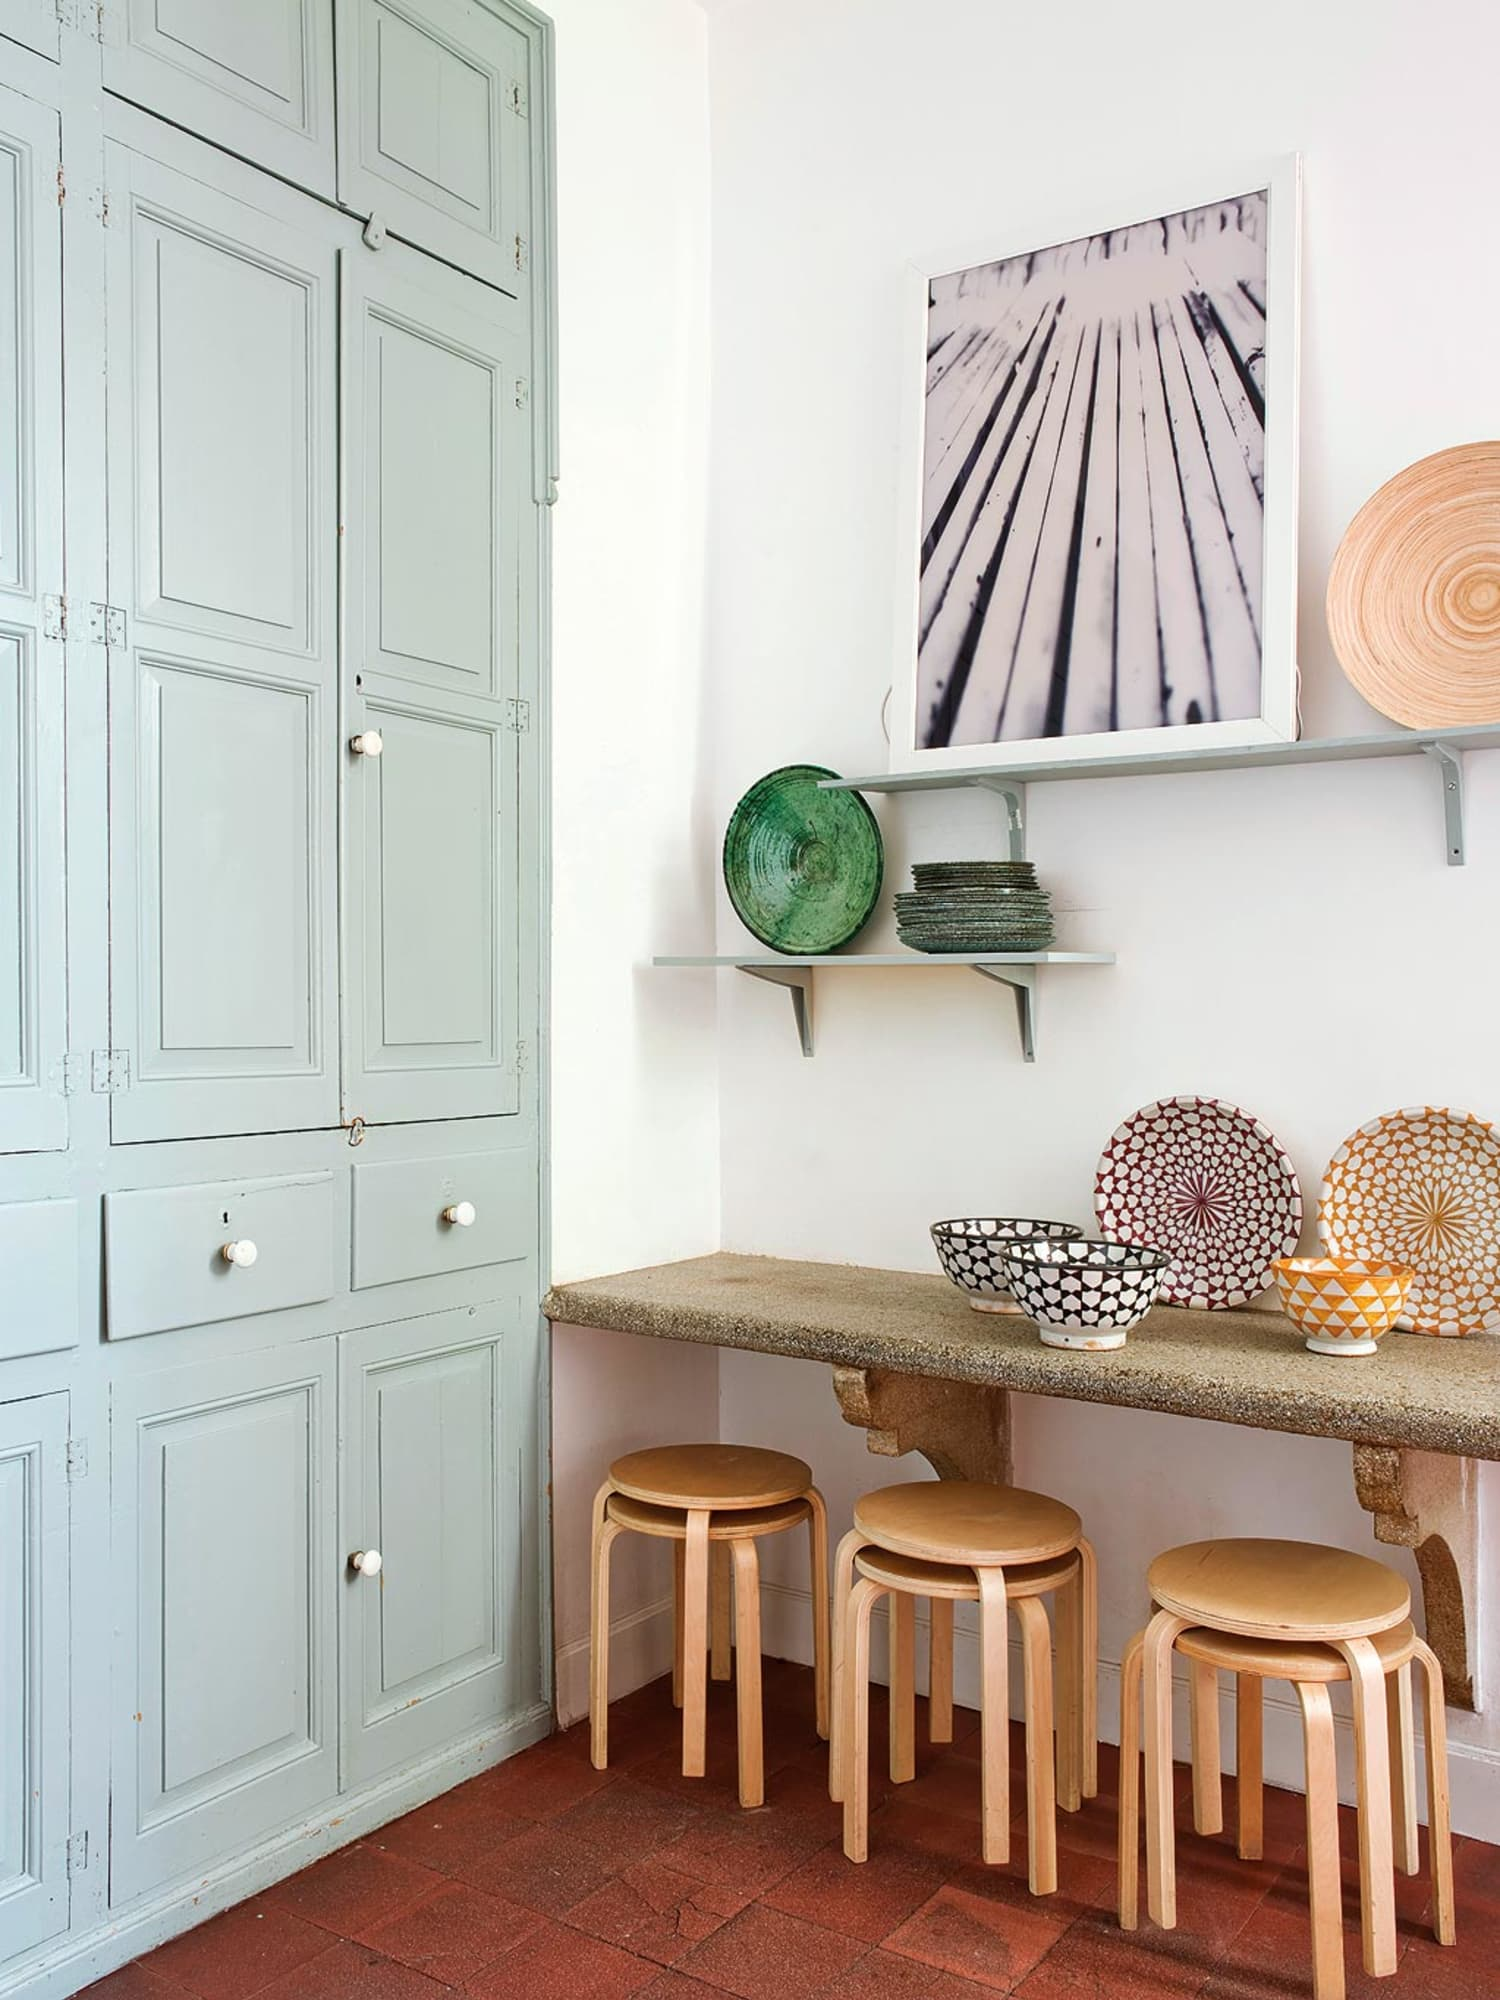 Small Living Room Apartment Therapy: 3 Indispensable Pieces For Small Space Living